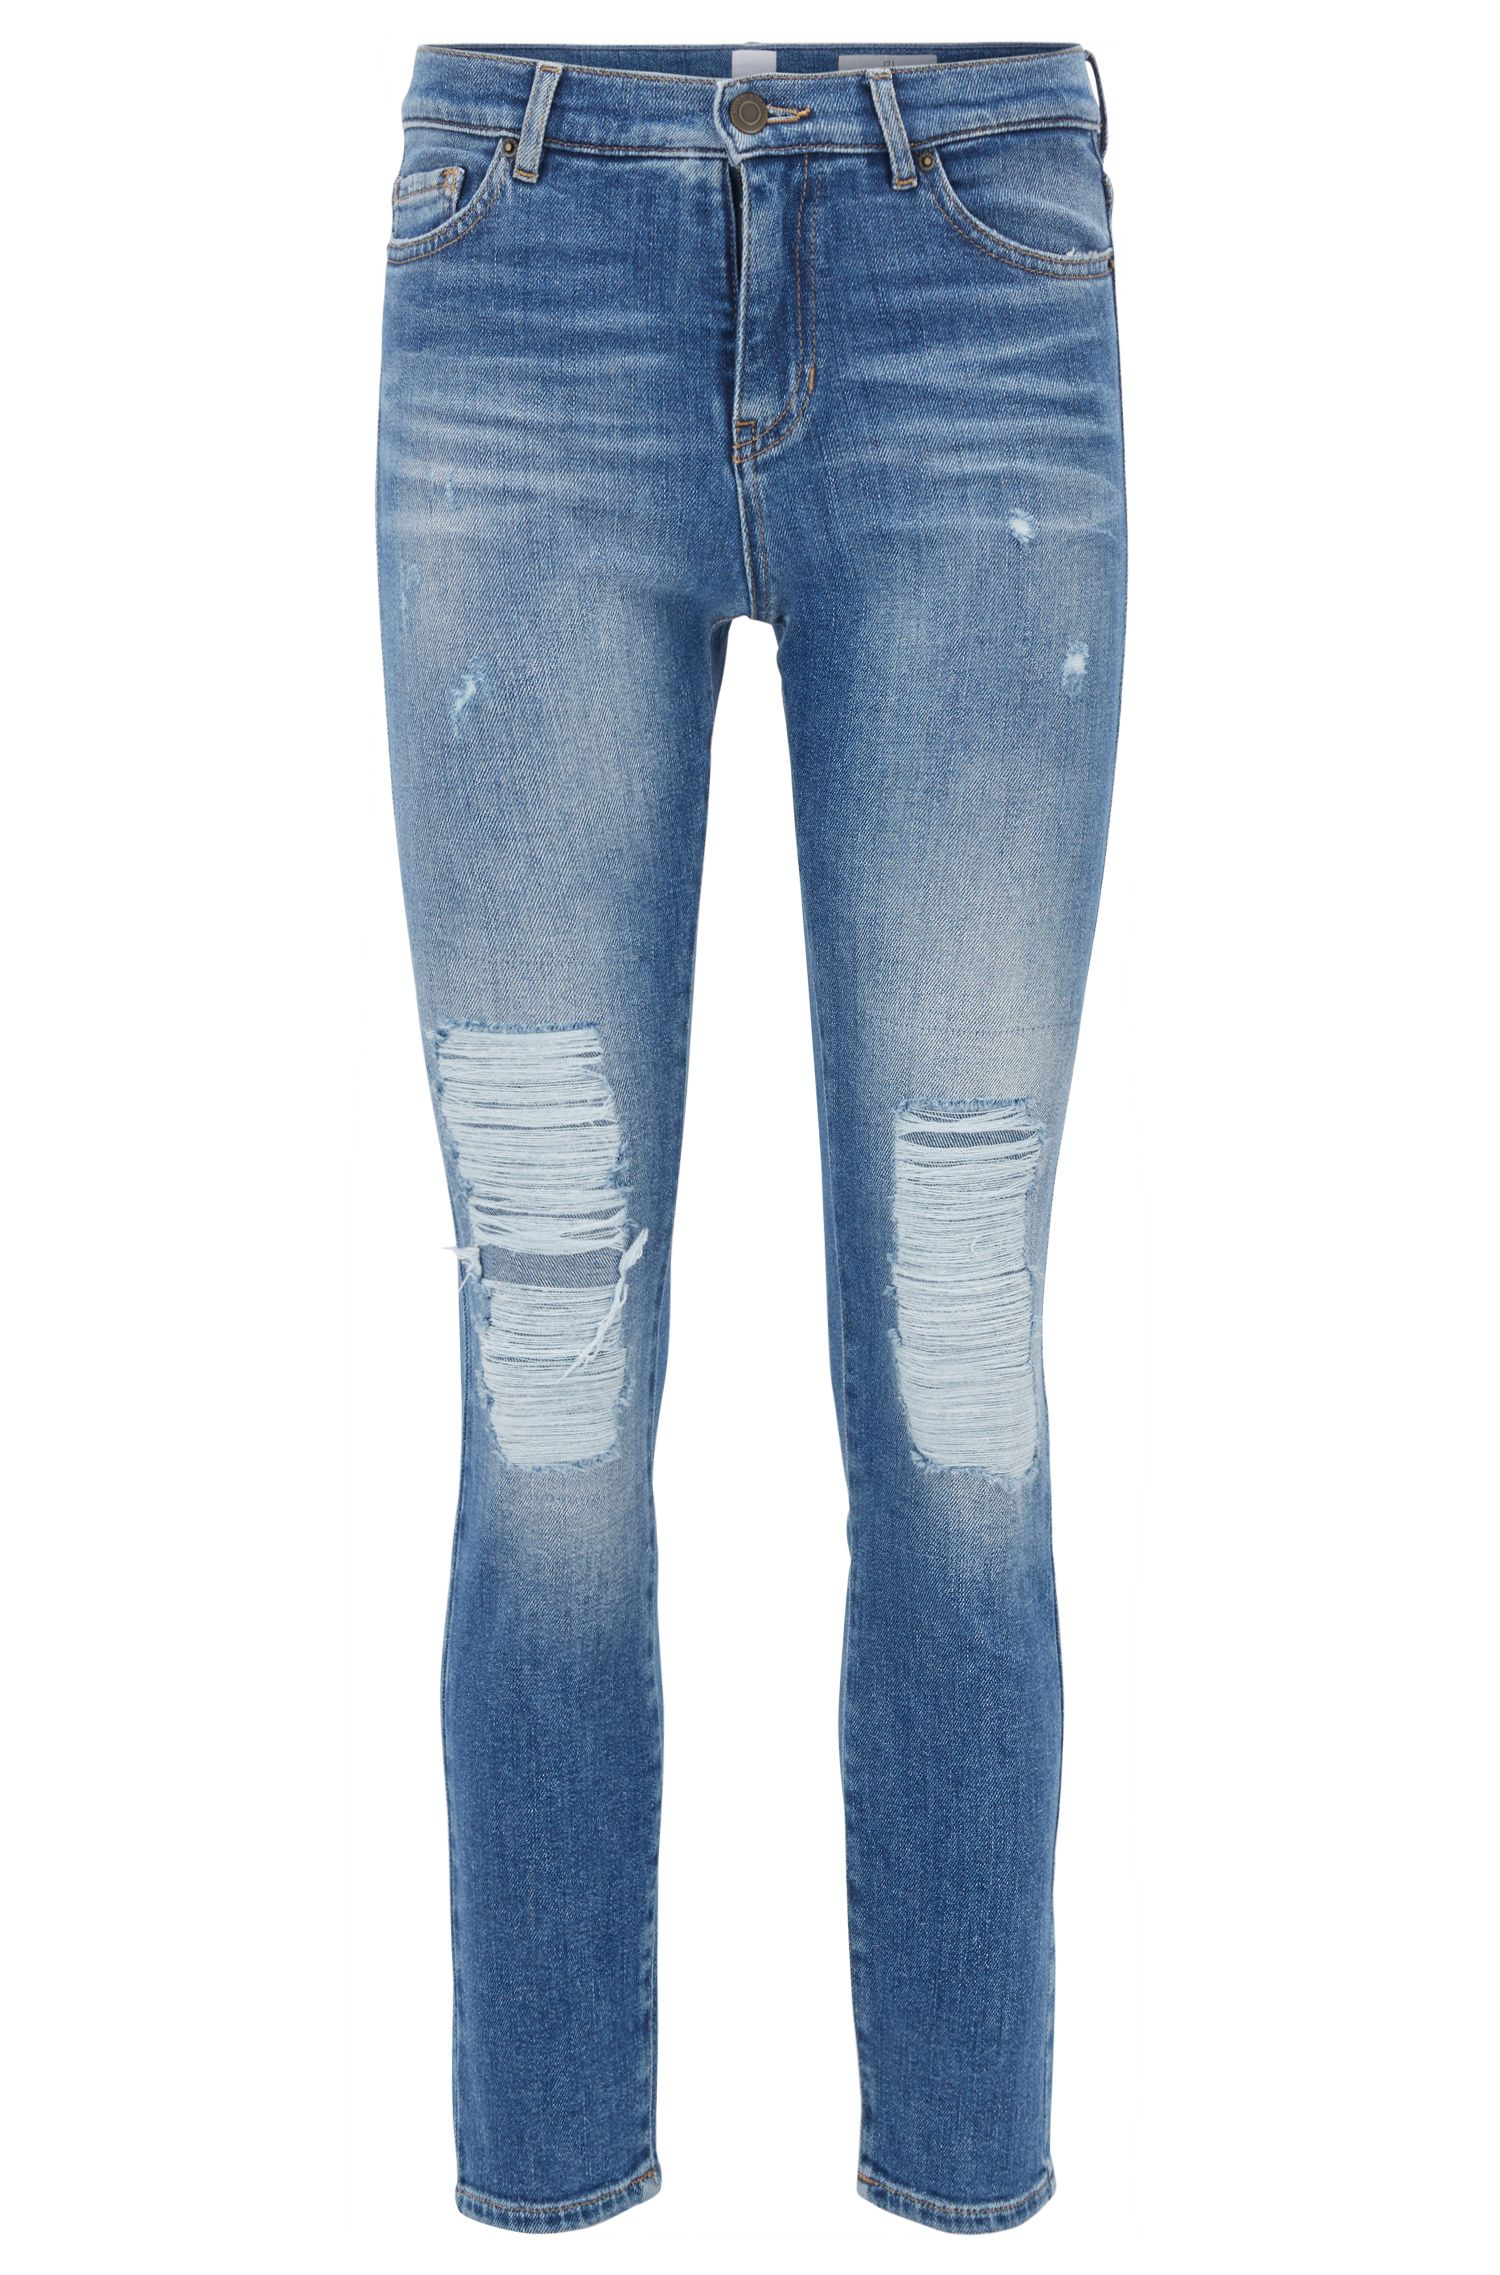 Slim-Fit Jeans in Cropped-Länge mit starken Used-Effekten, Blau